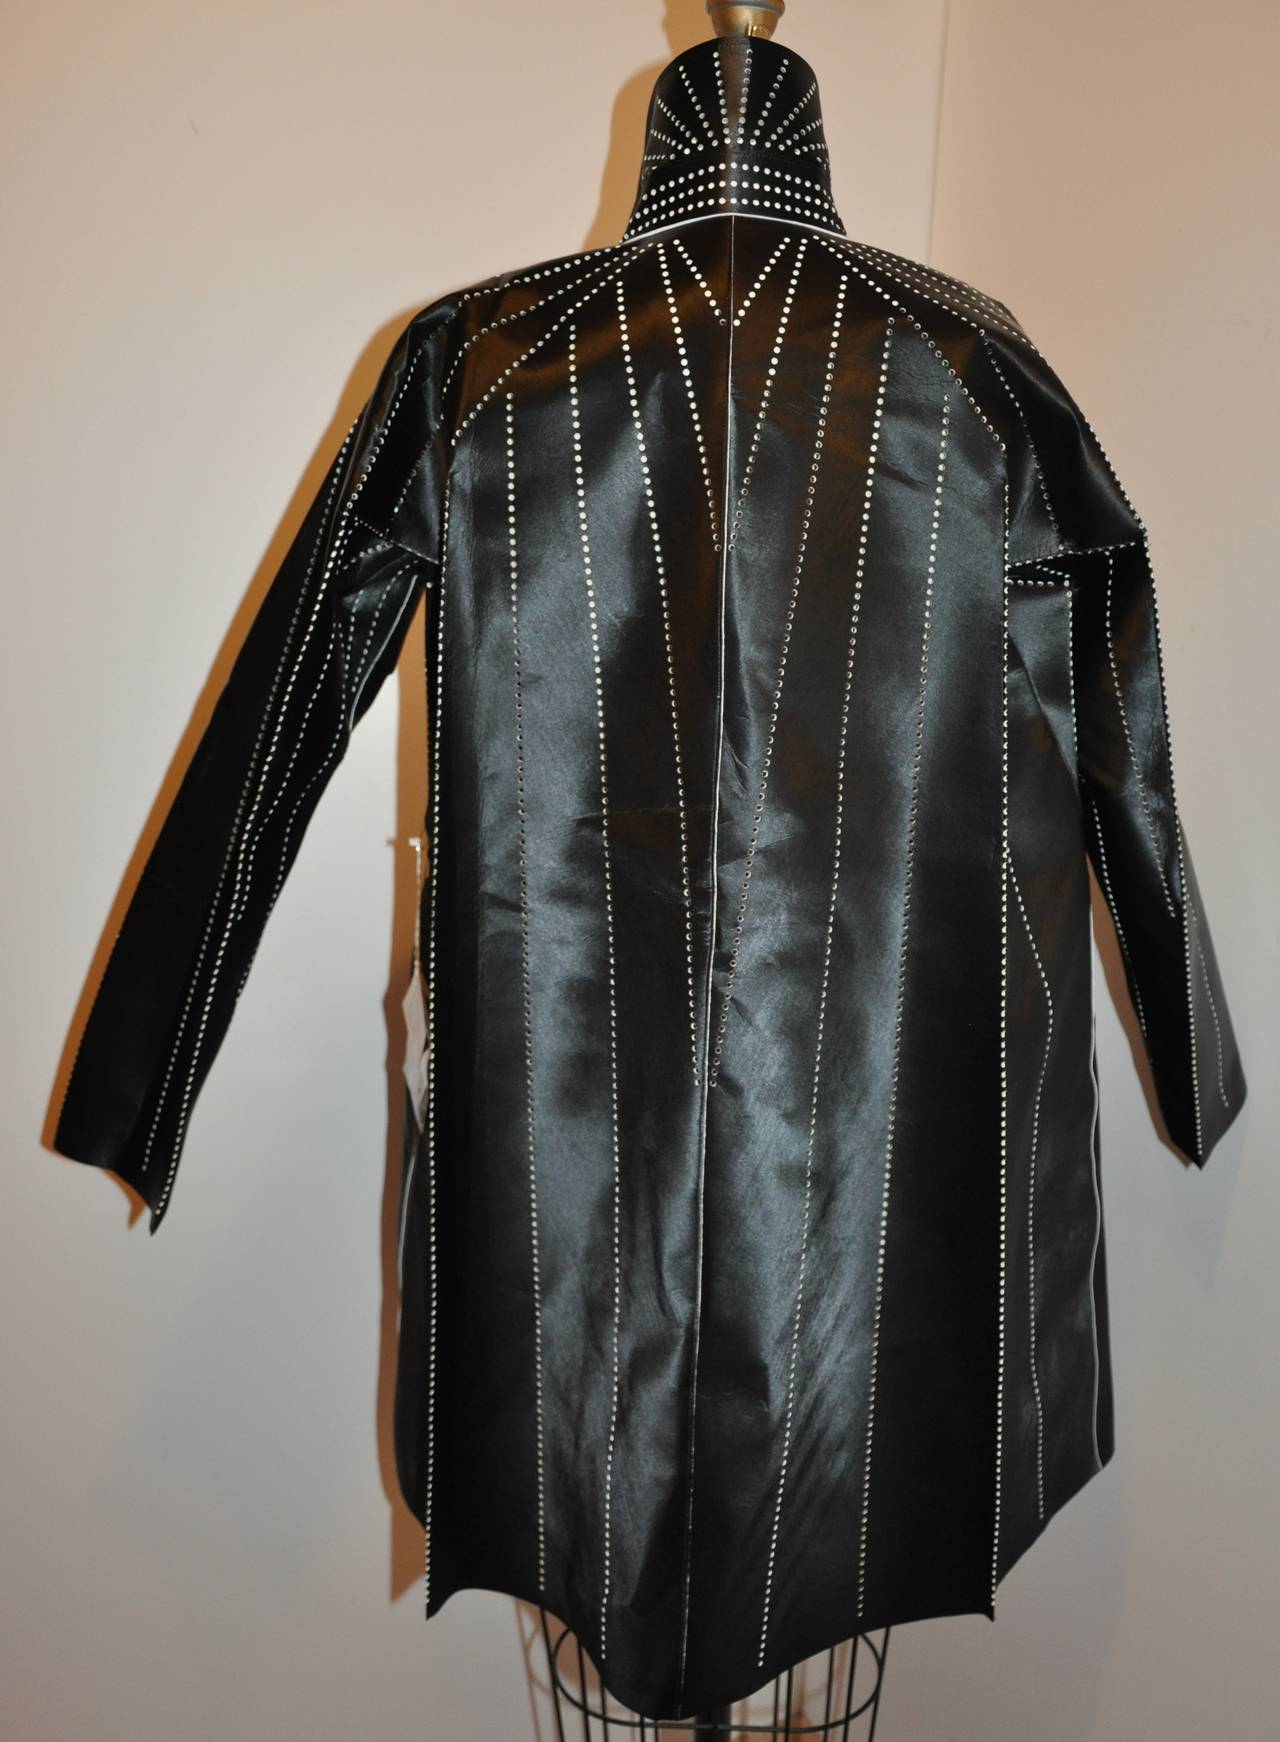 Issey Miyake Dark Navy Flared Stencil Jacket In New never worn Condition For Sale In New York, NY